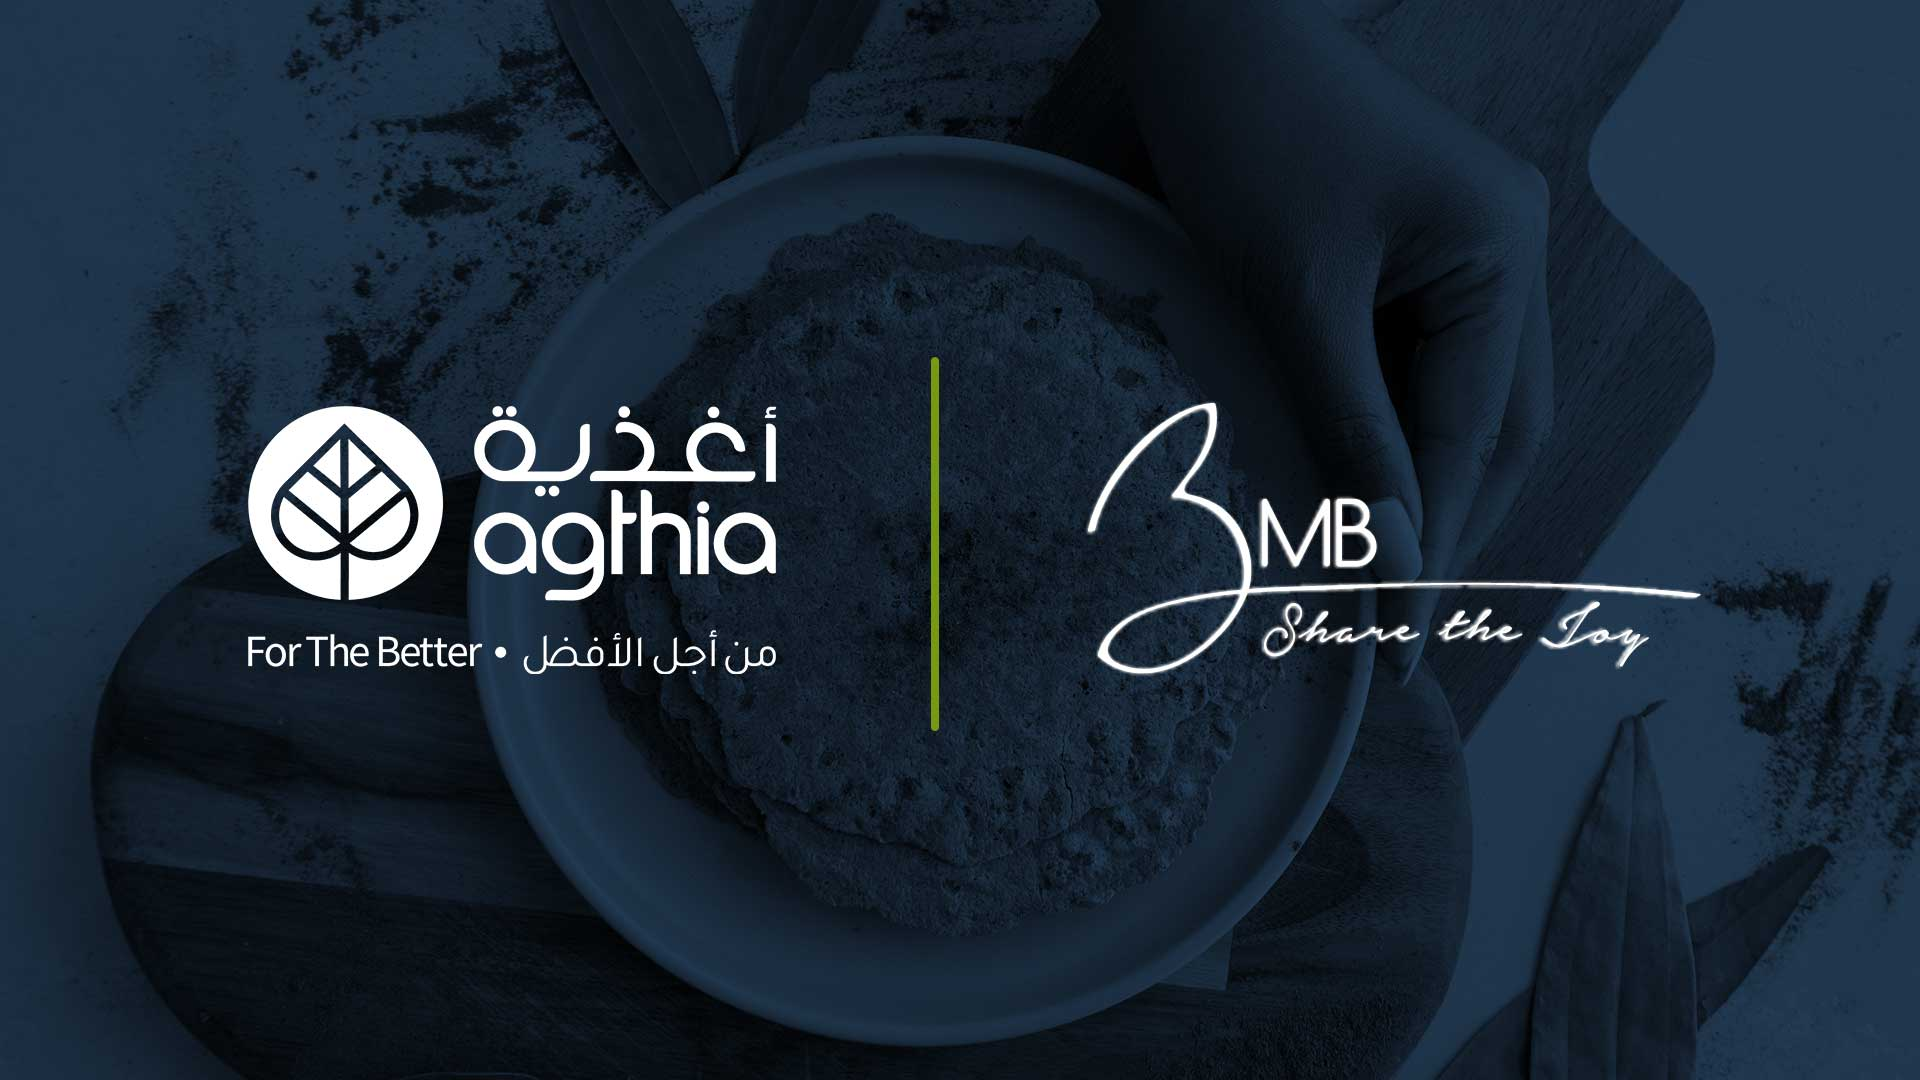 Agthia Group Announces Further Investment in Snacking and Healthy Food Market Through Acquisition of BMB